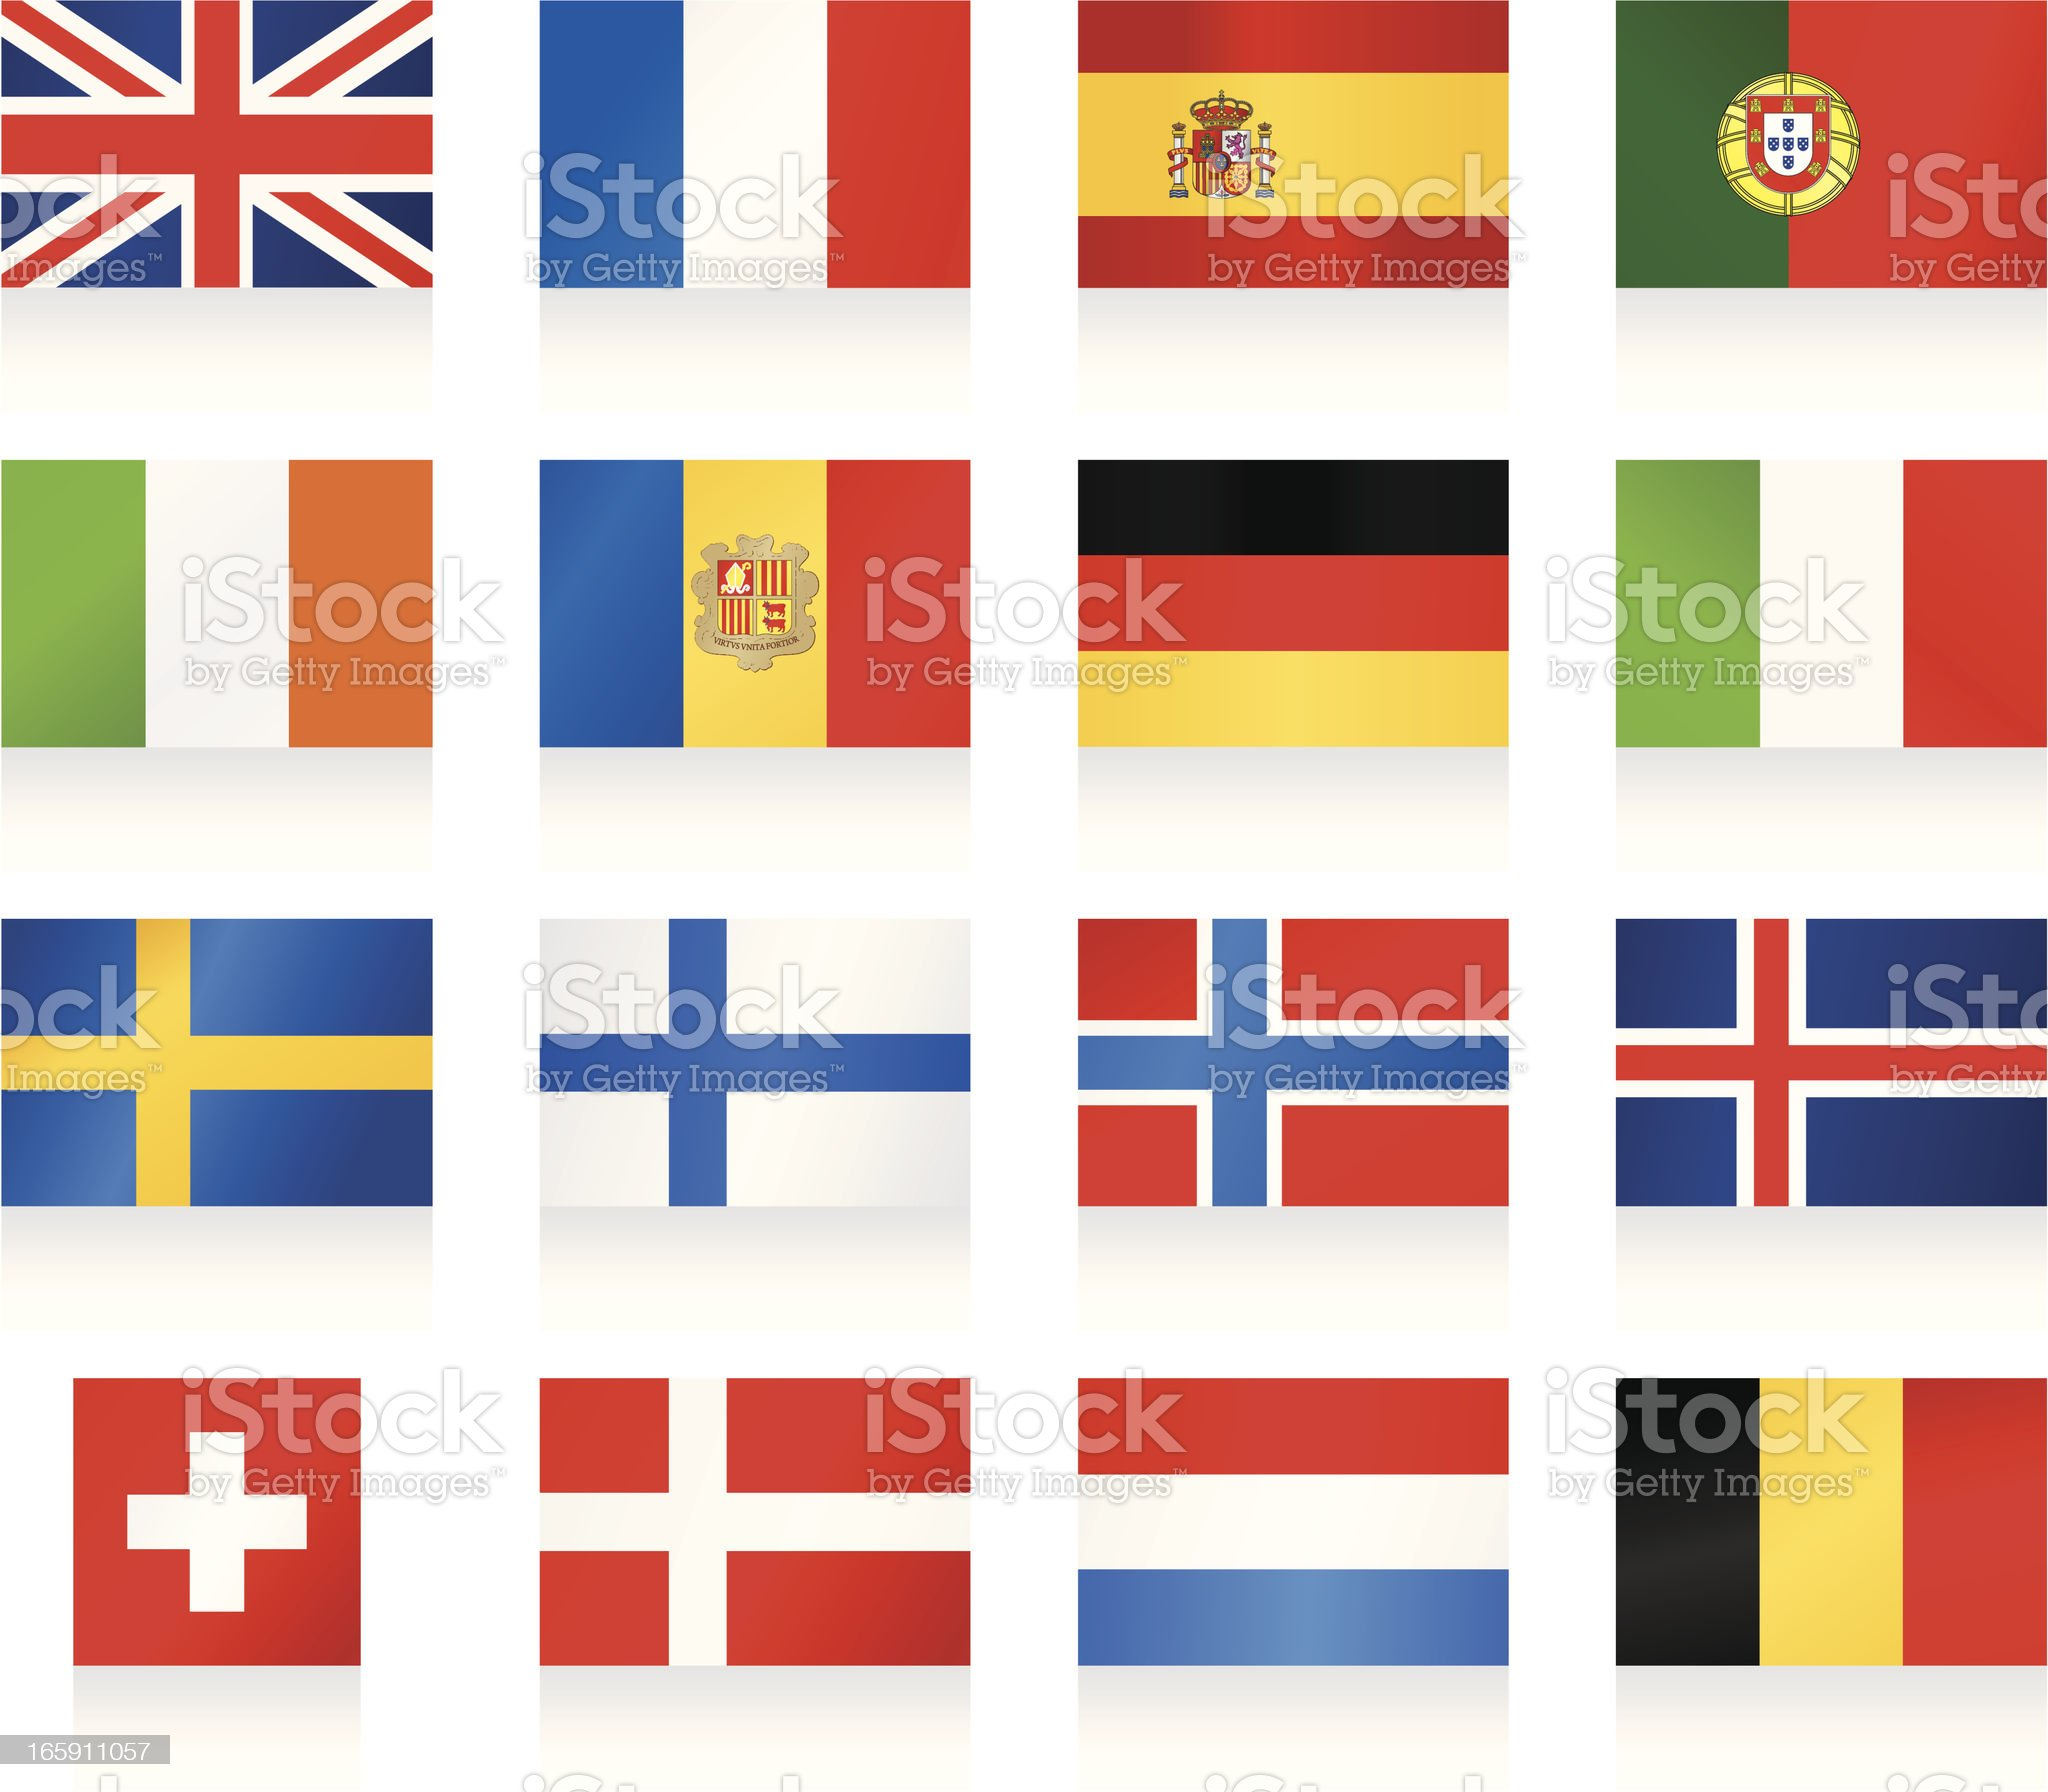 Flags collection 1 - Western and Nothern Europe royalty-free stock vector art